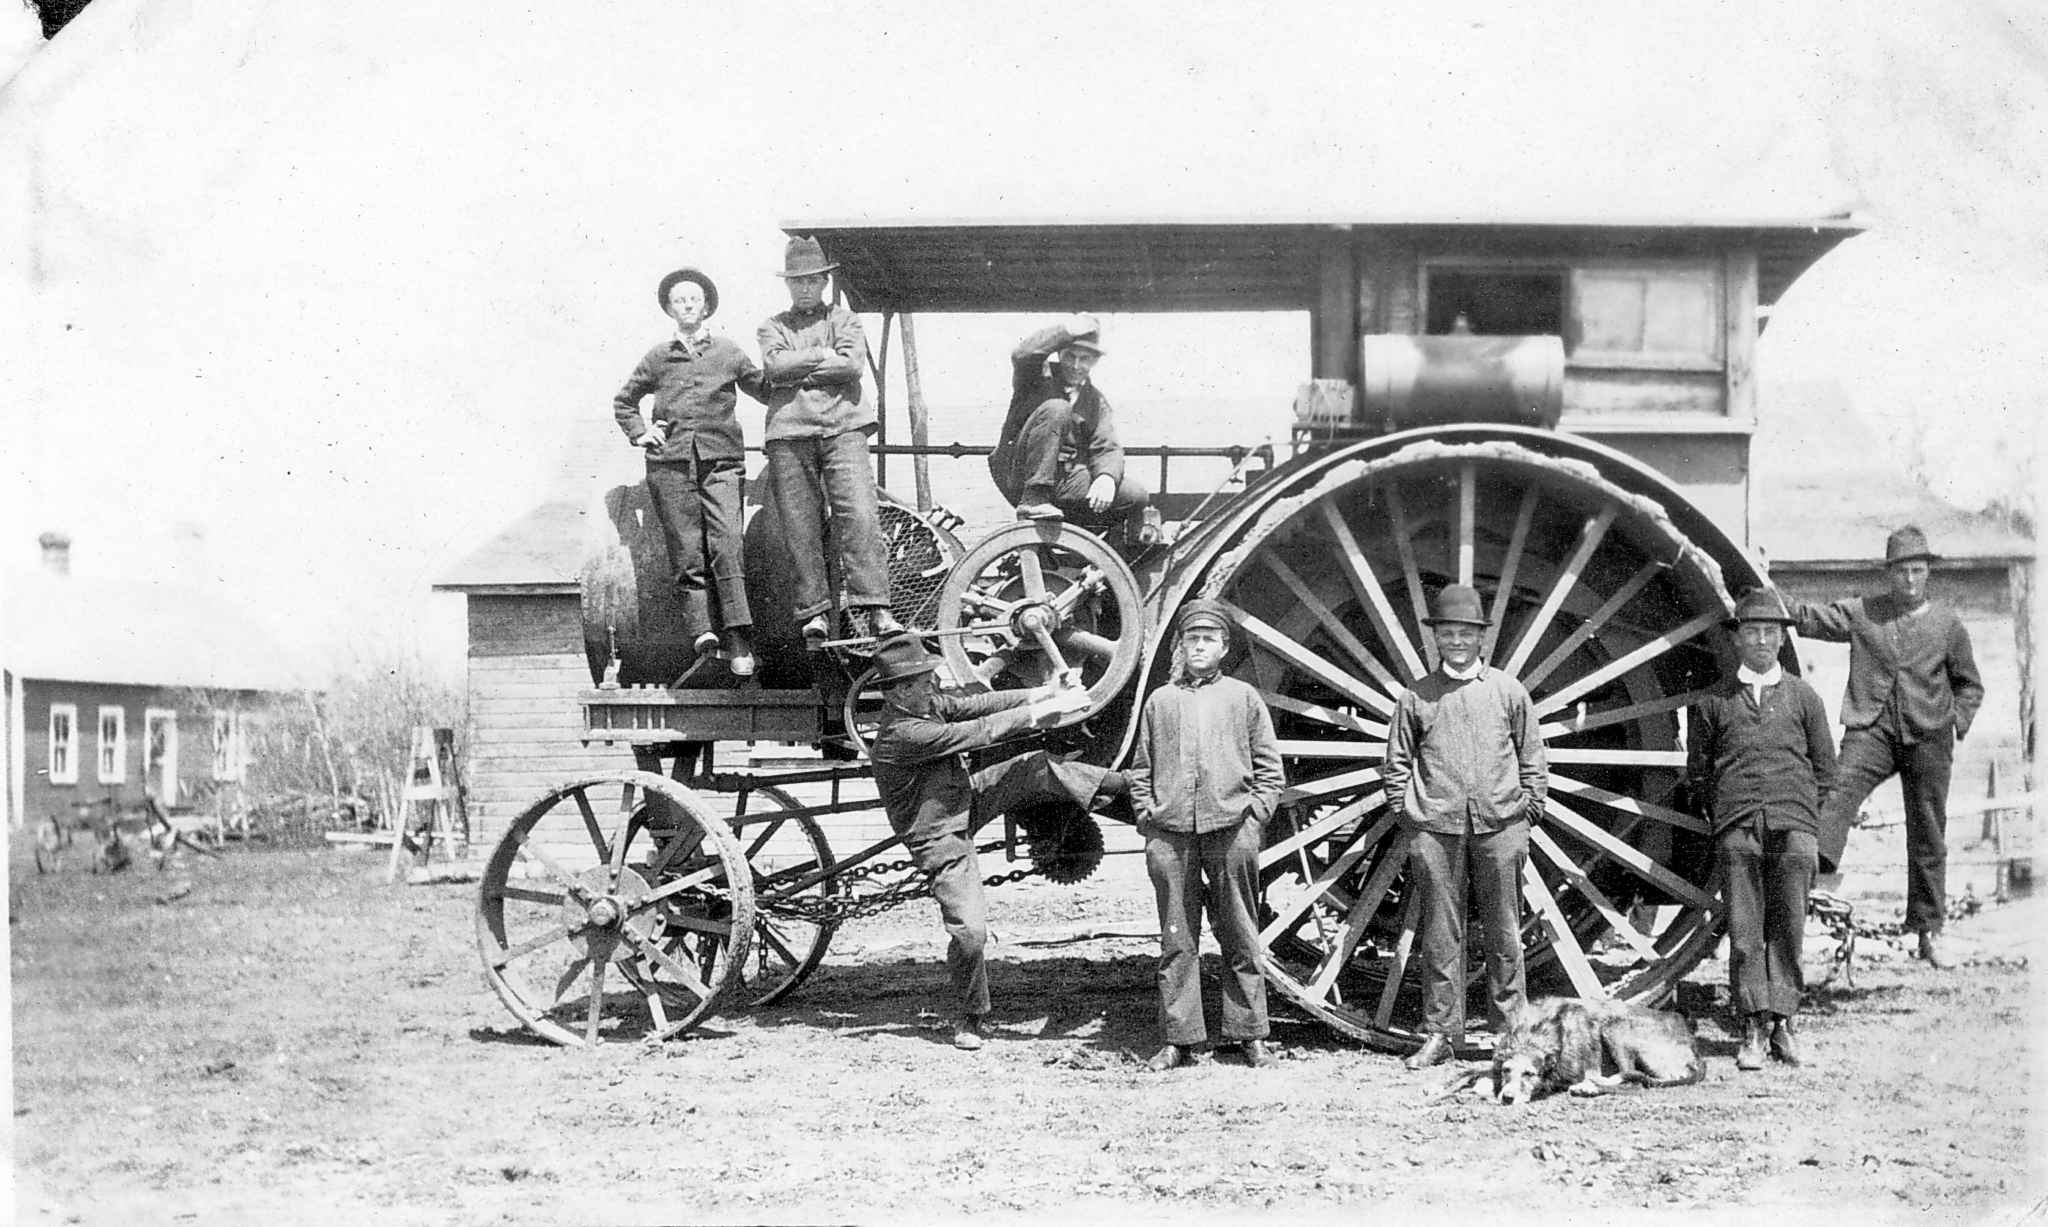 An Aultman Taylor 30-60 tractor in 1924. Manitoba Historical Society)